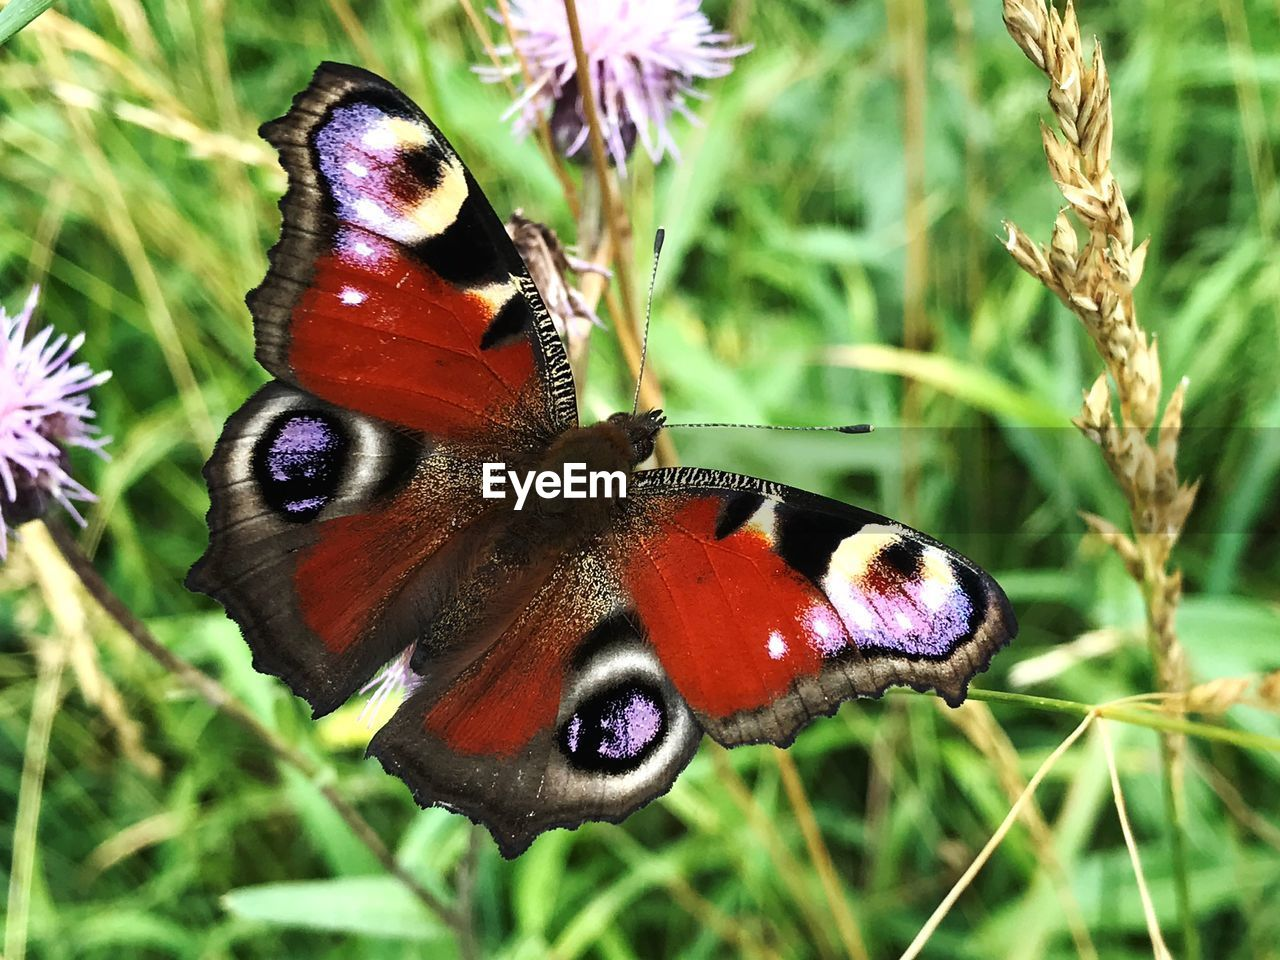 animal themes, insect, animal wildlife, animal, invertebrate, animals in the wild, one animal, animal wing, butterfly - insect, plant, beauty in nature, close-up, flower, flowering plant, focus on foreground, nature, no people, day, animal markings, butterfly, pollination, flower head, outdoors, purple